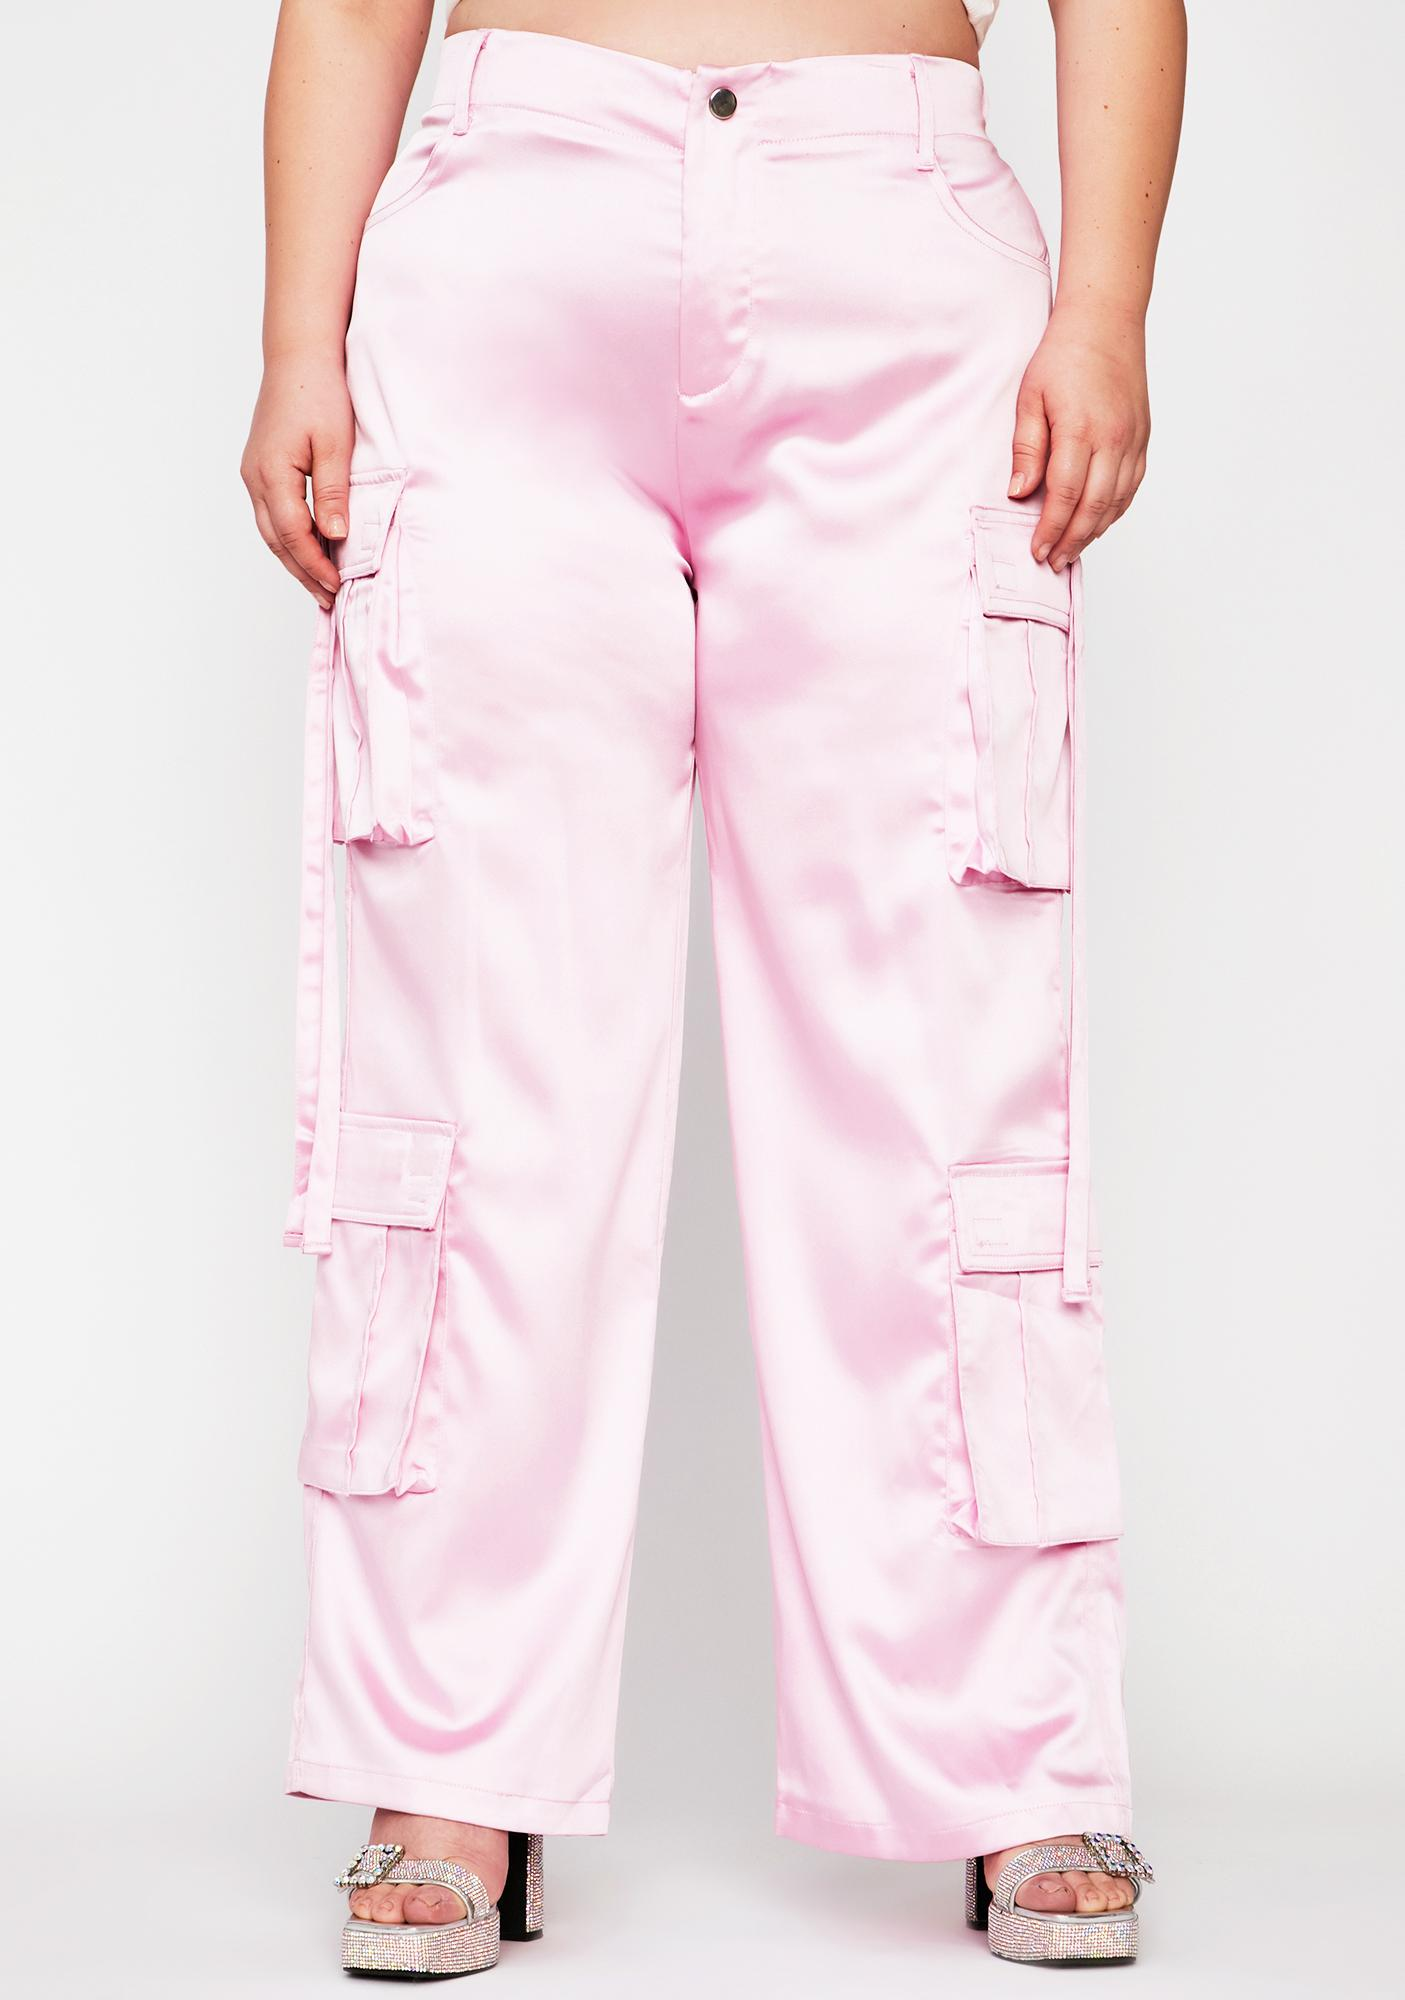 Sugar Thrillz Totally Candy Crushed Cargo Pants